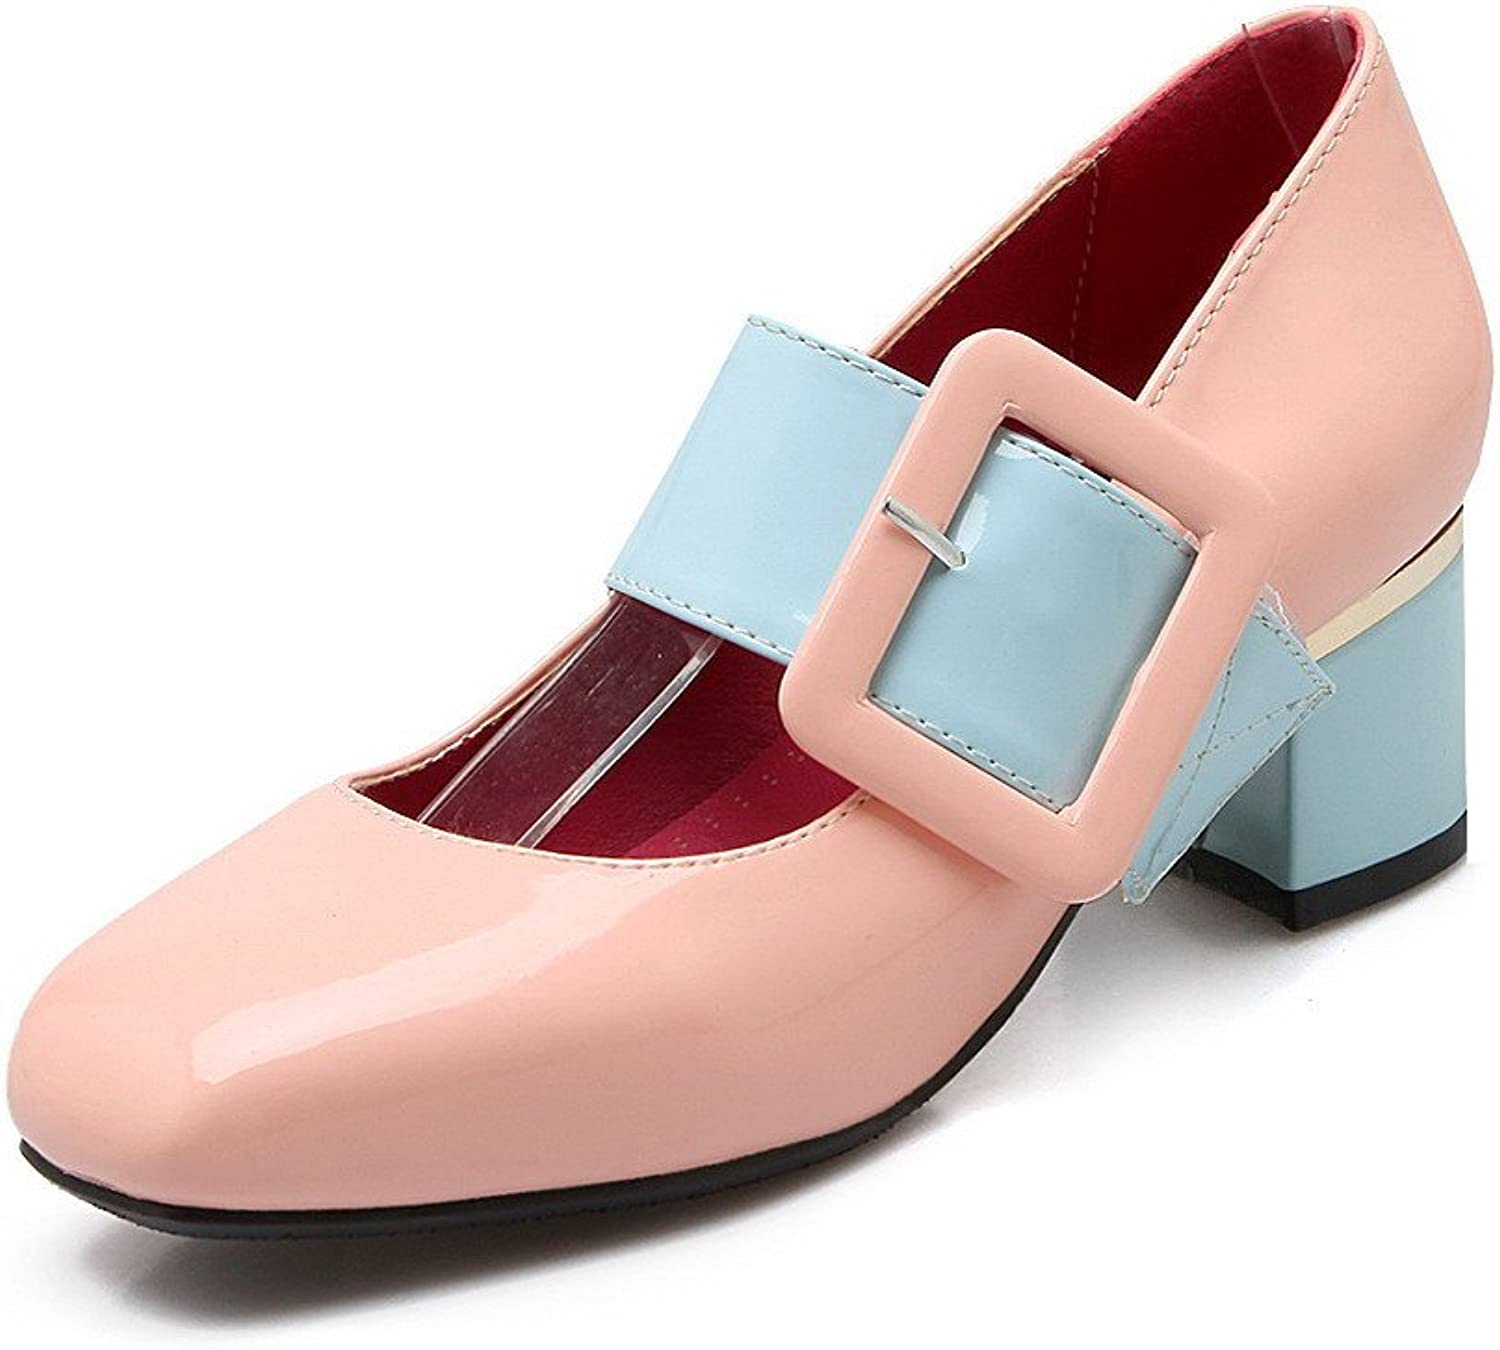 AmoonyFashion Women's Buckle Kitten Heels Enamelled Leather Square Closed Toe Pumps-shoes